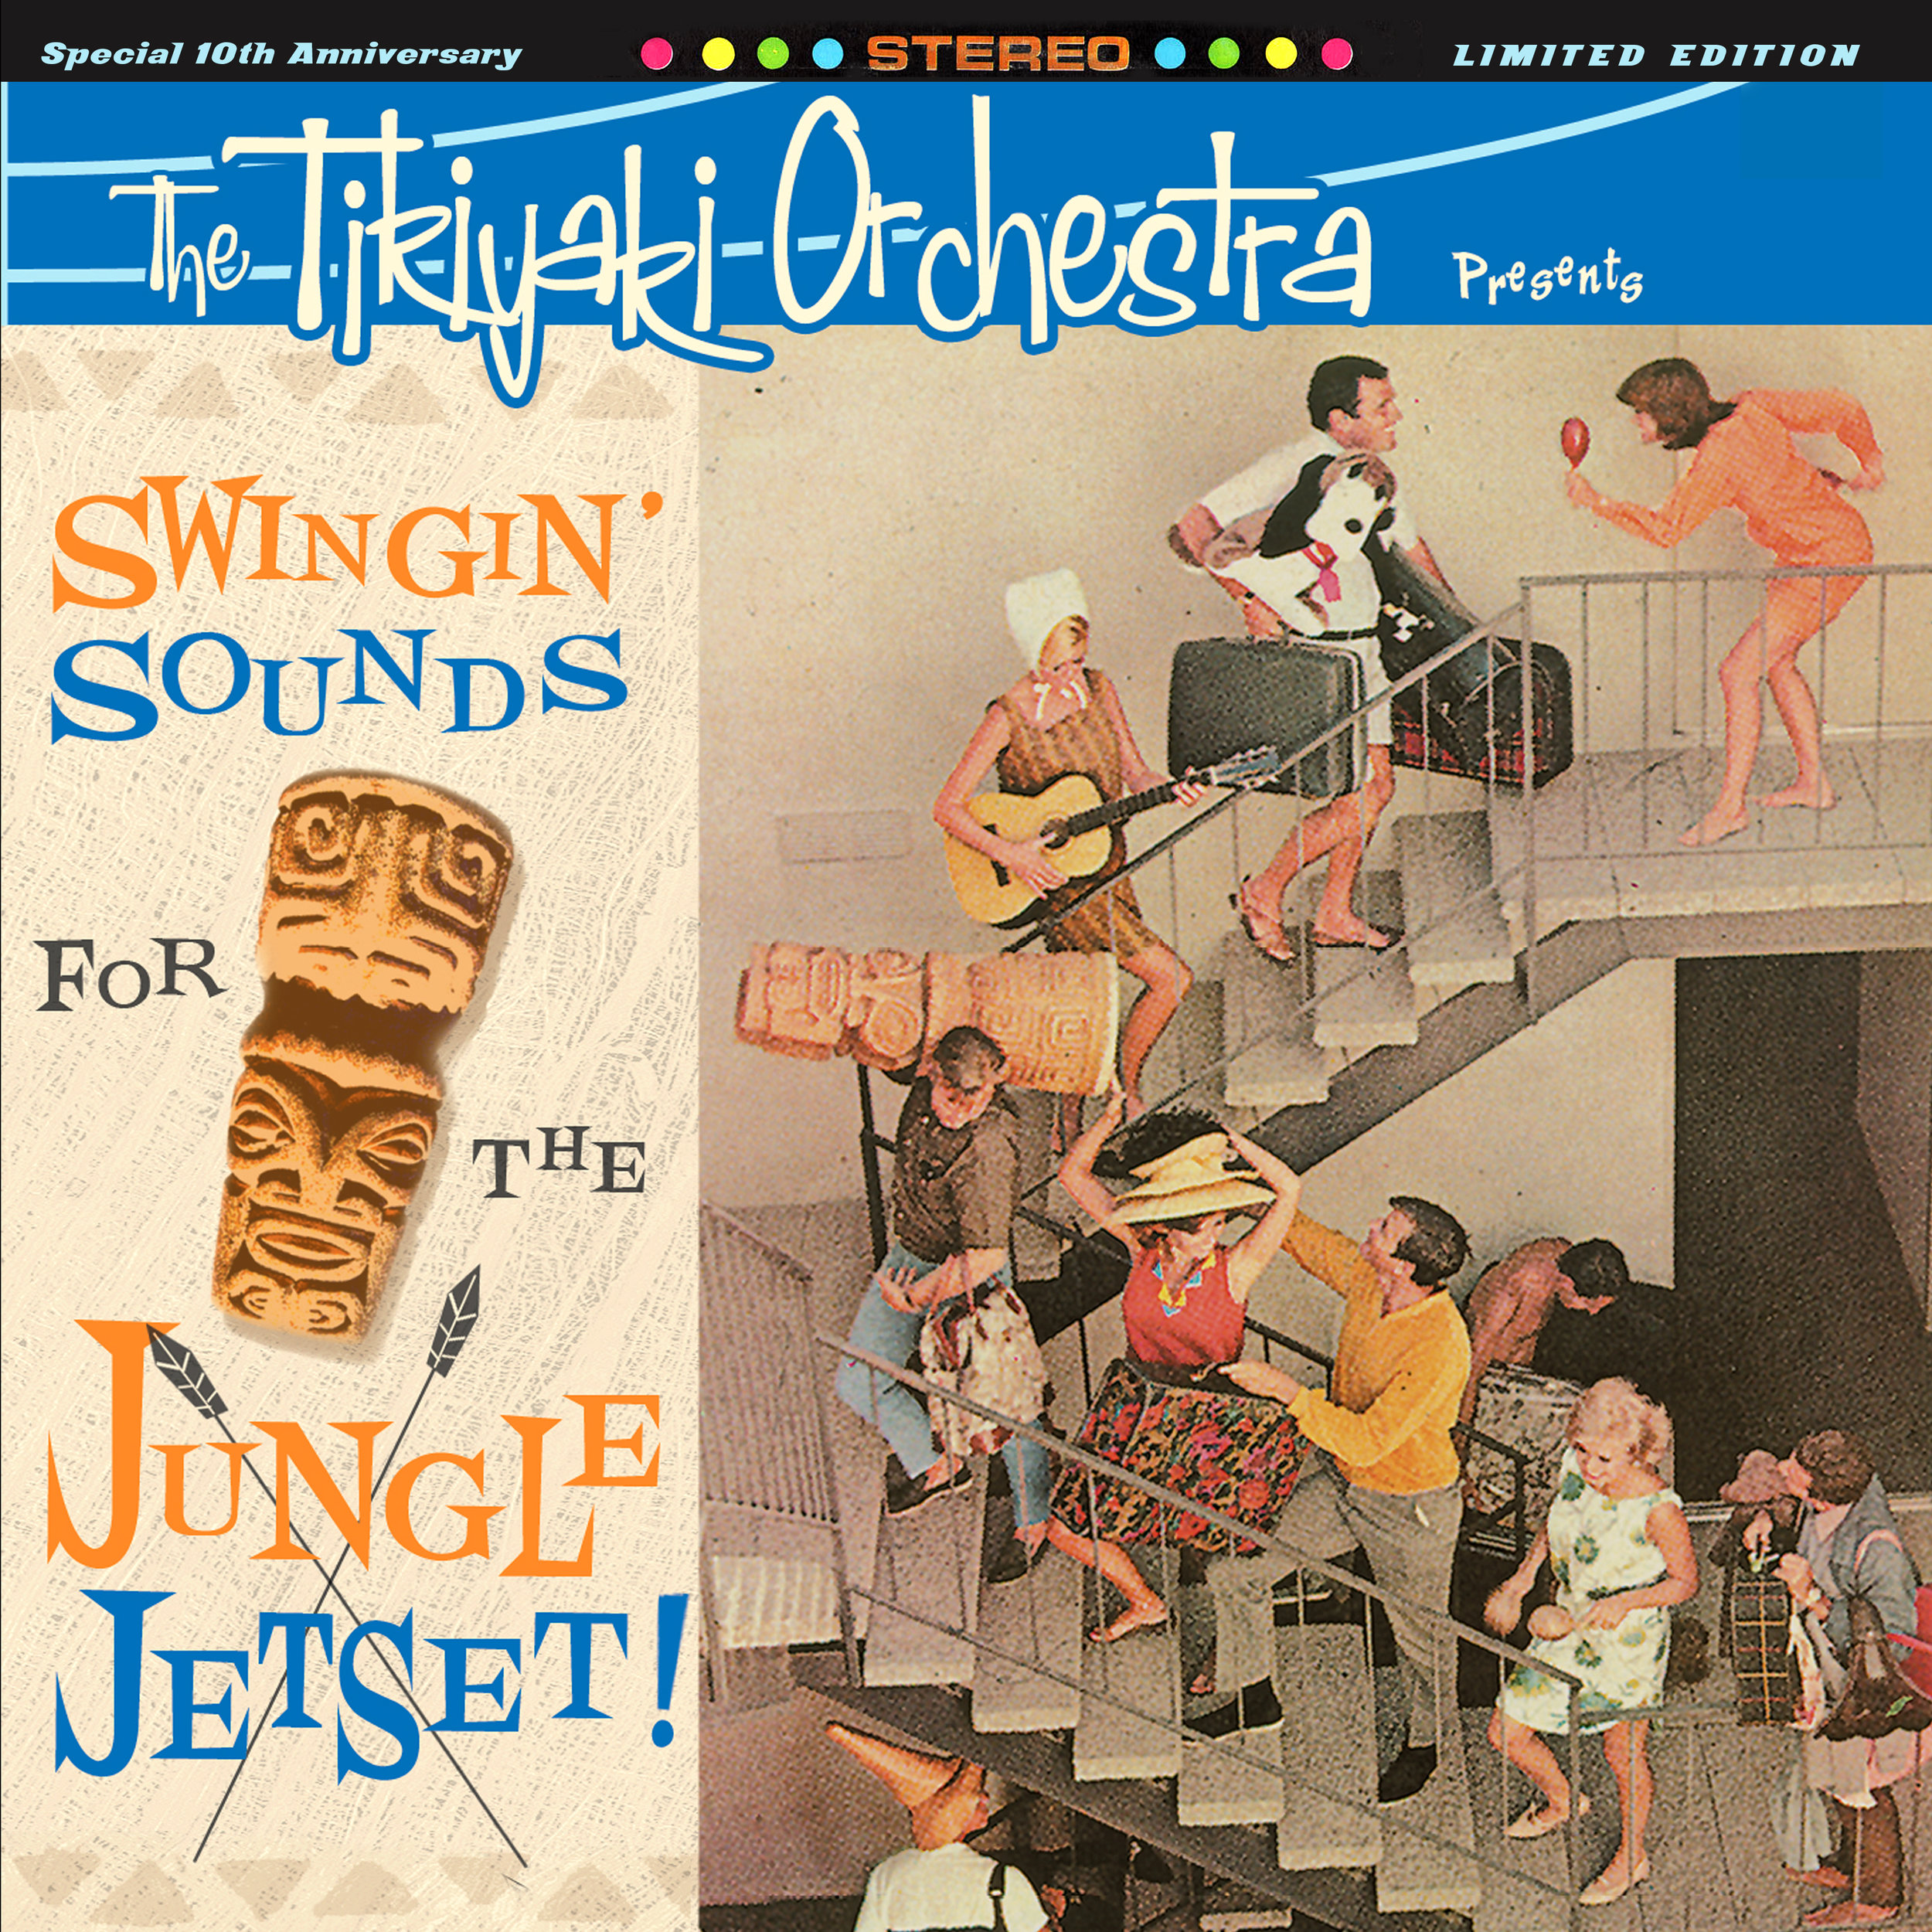 "THE TIKIYAKI ORCHESTRA  ""Swingin' Sounds for the Jungle Jetset!"" (HT-043) Format: LP"